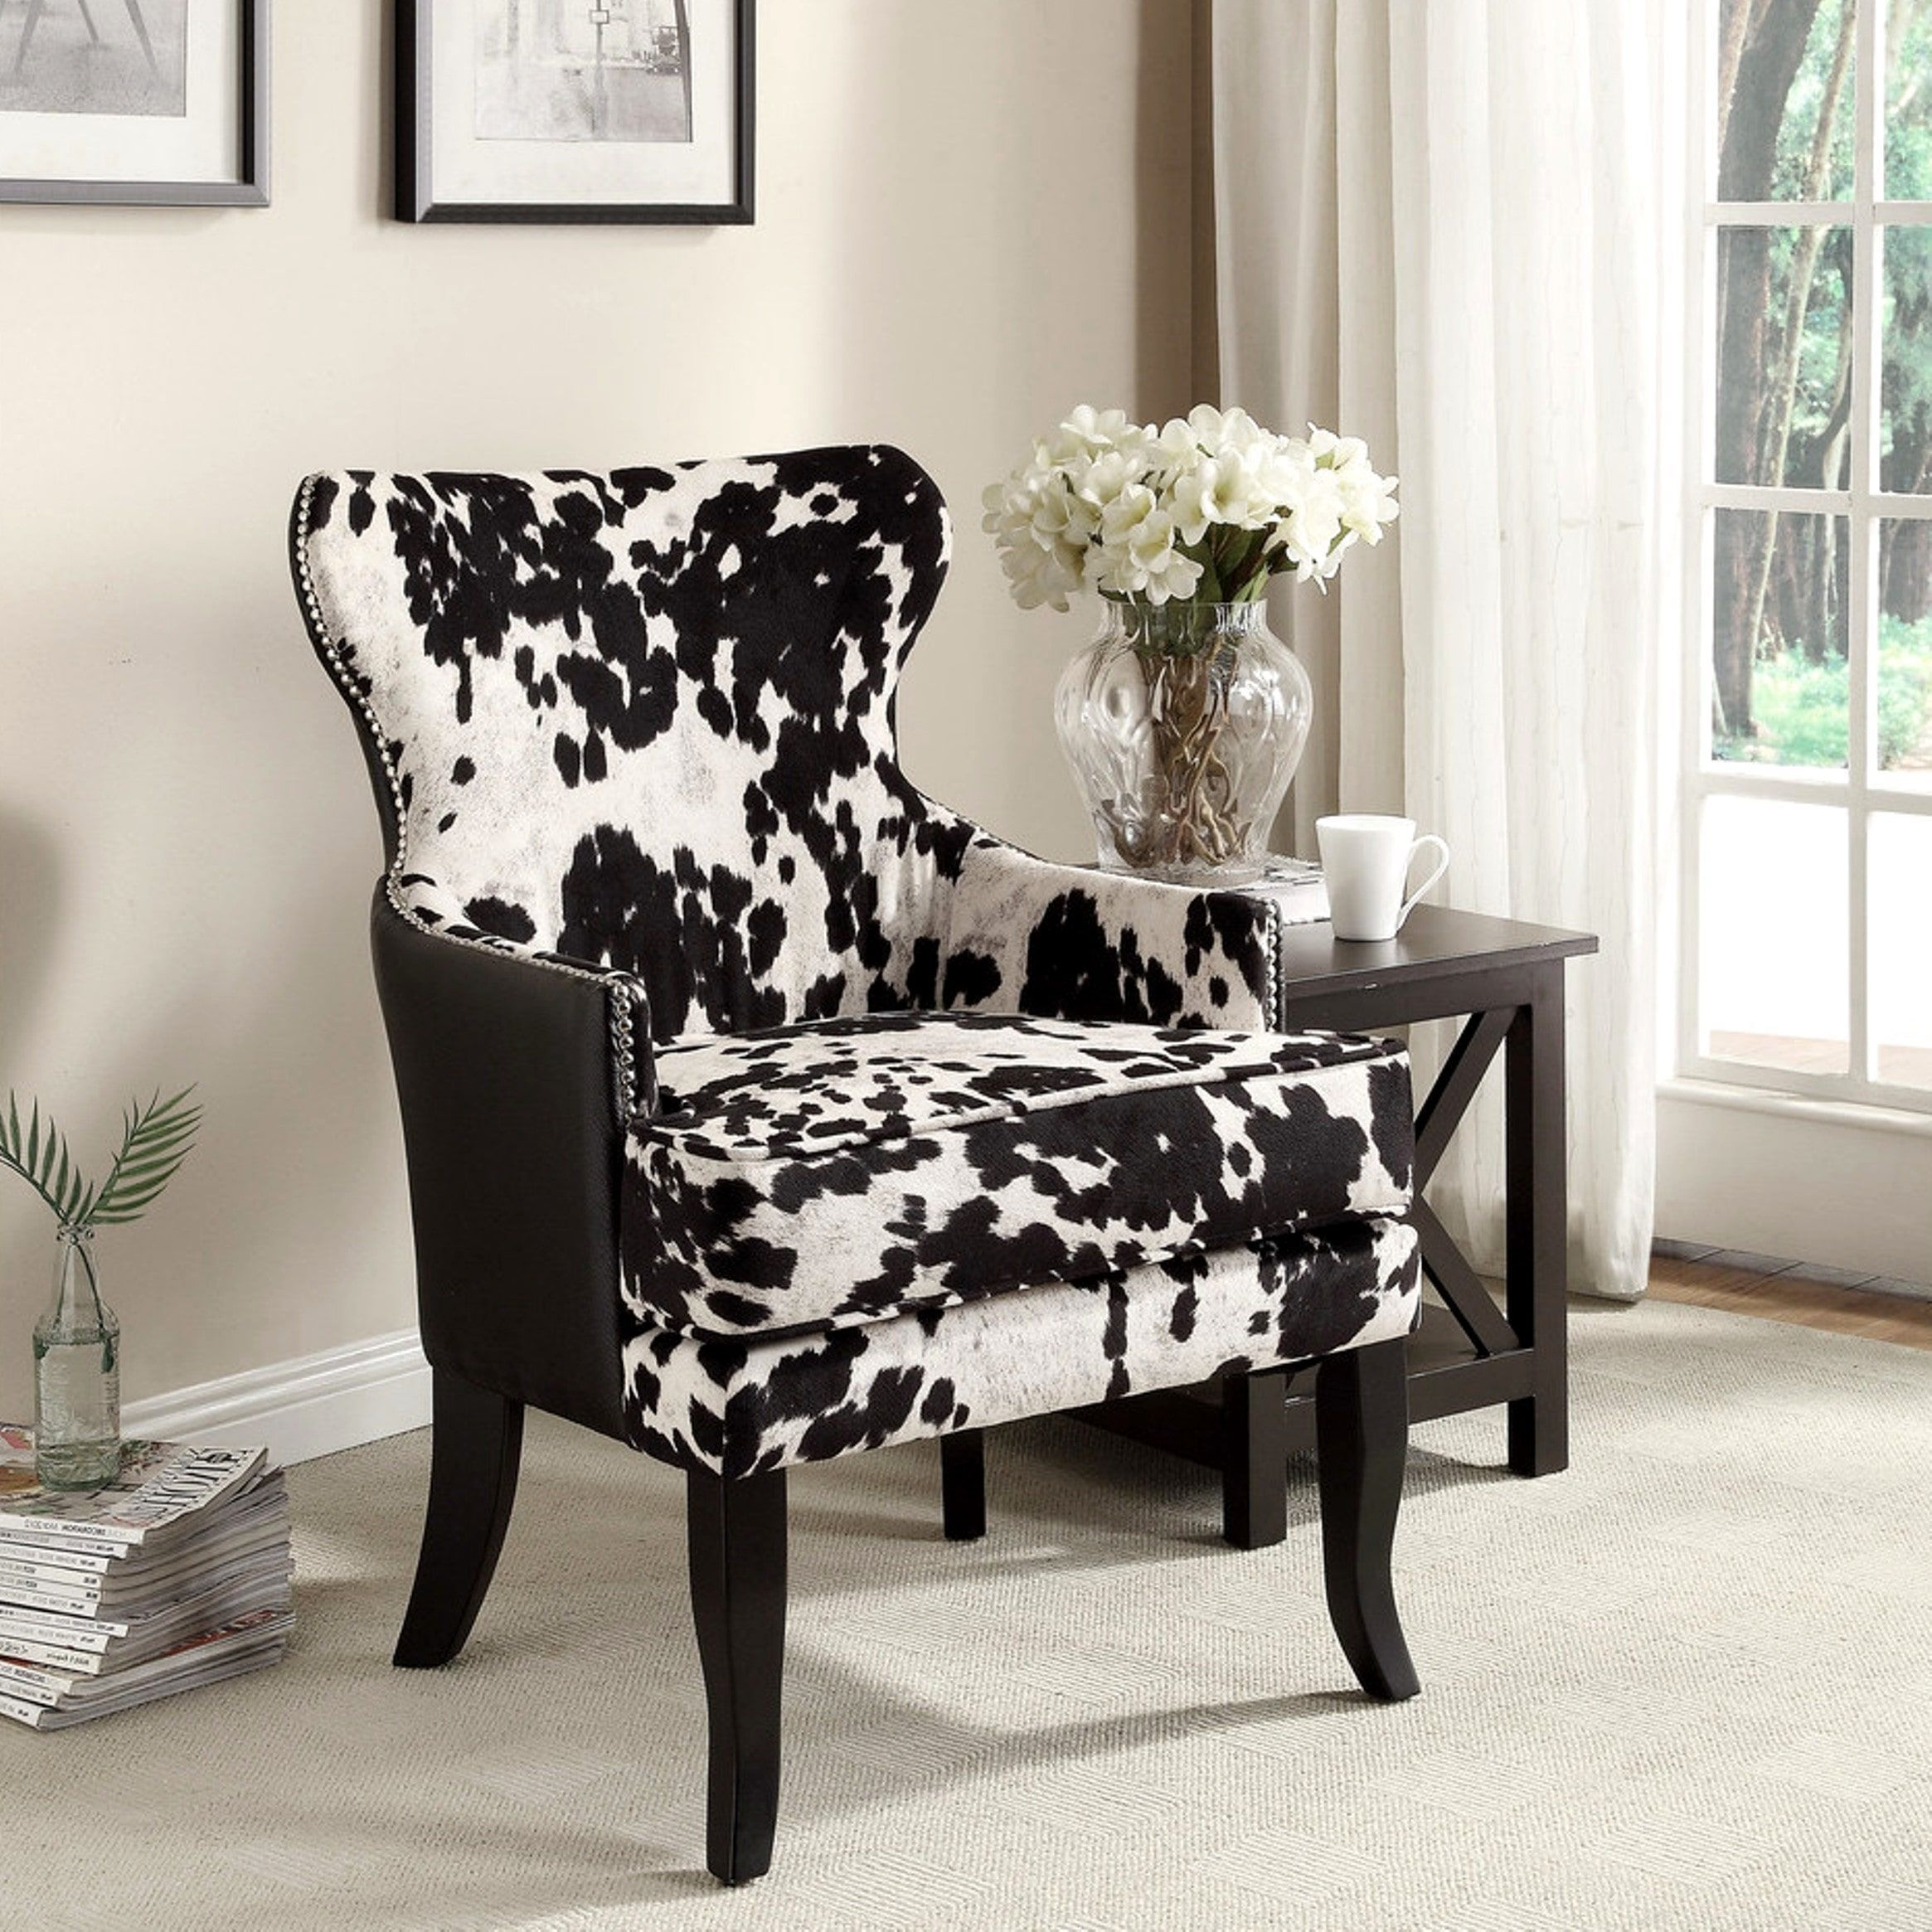 Online Shopping Bedding Furniture Electronics Jewelry Clothing More Living Room Chairs Accent Chairs Furniture